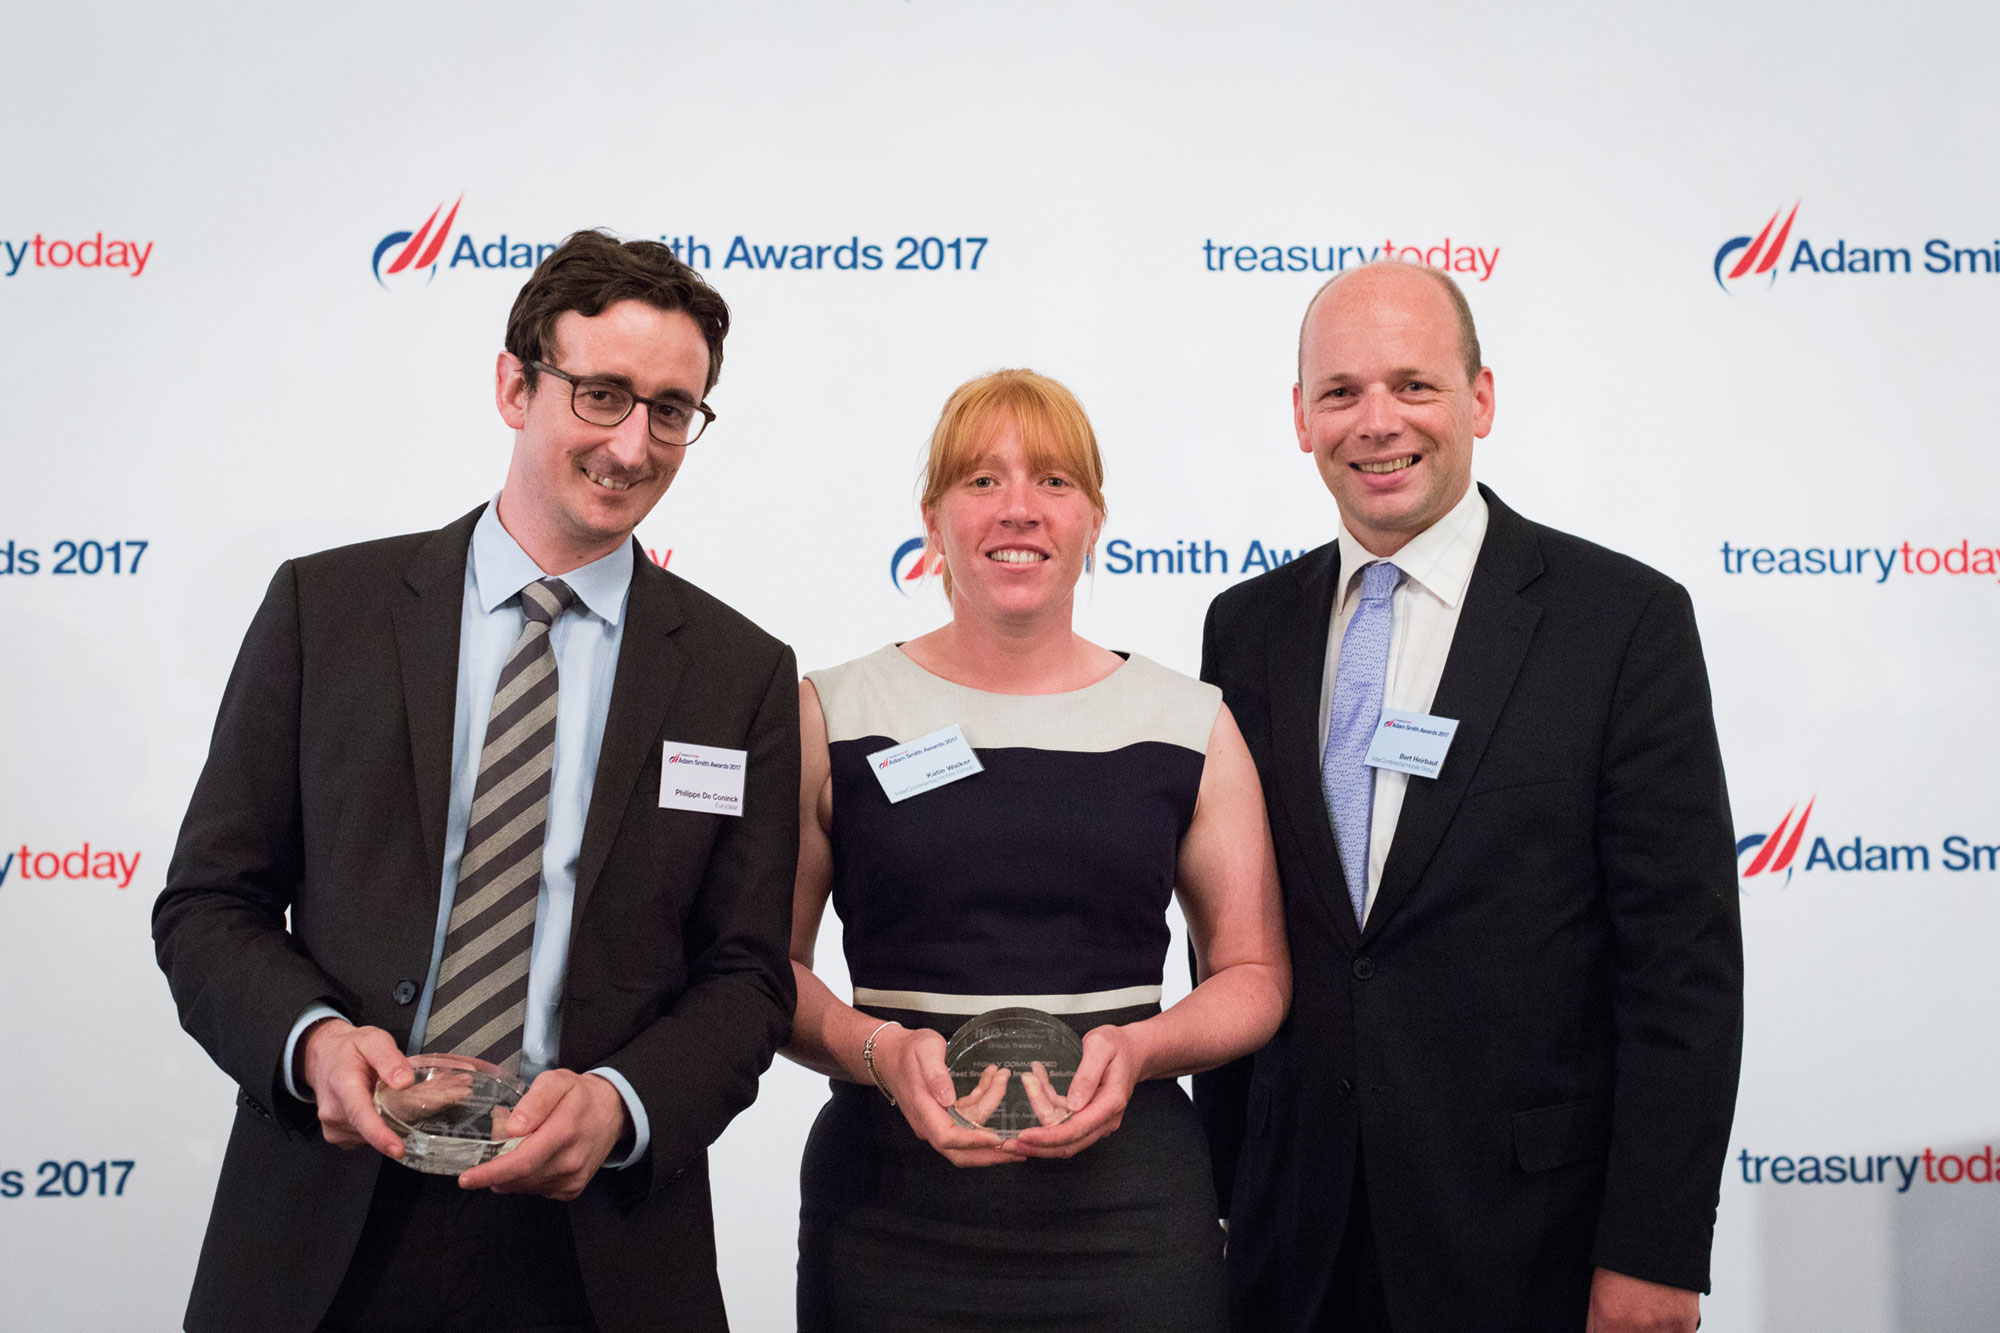 Cash Pool Notional Adam Smith Awards 2018 Award Winners Treasury Today